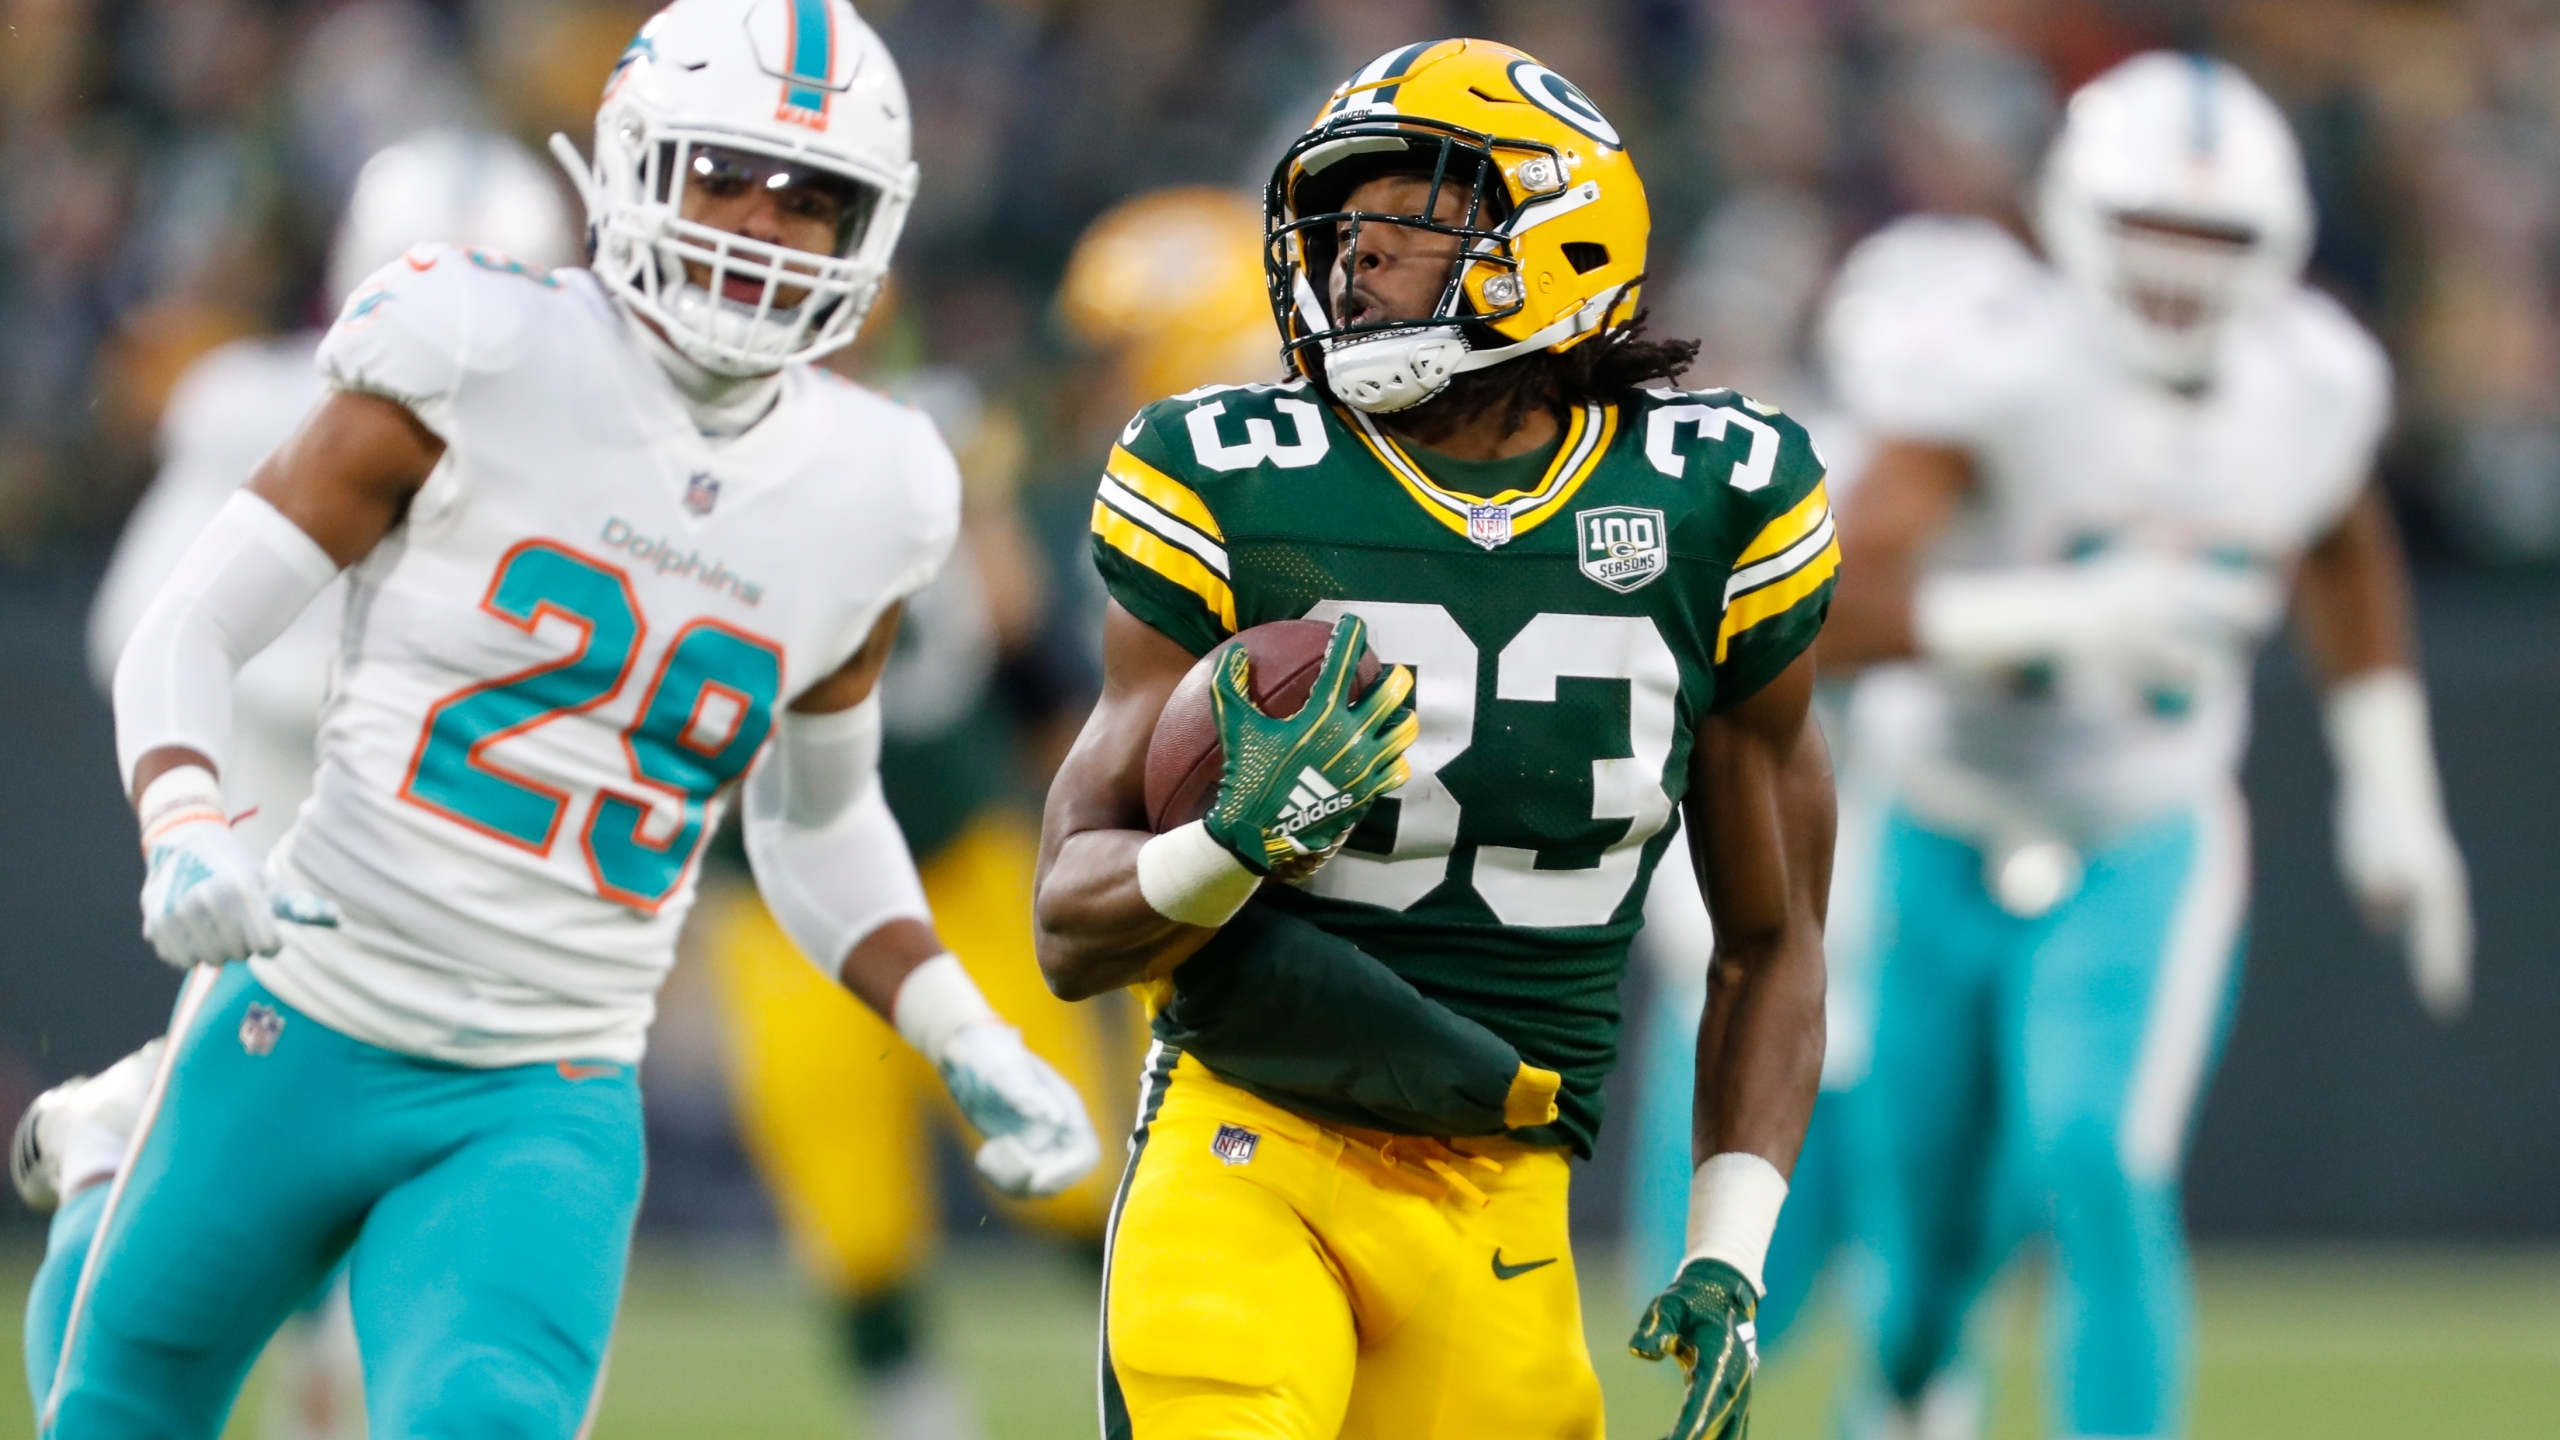 Dolphins_Packers_Football_17704-159532.jpg01078901